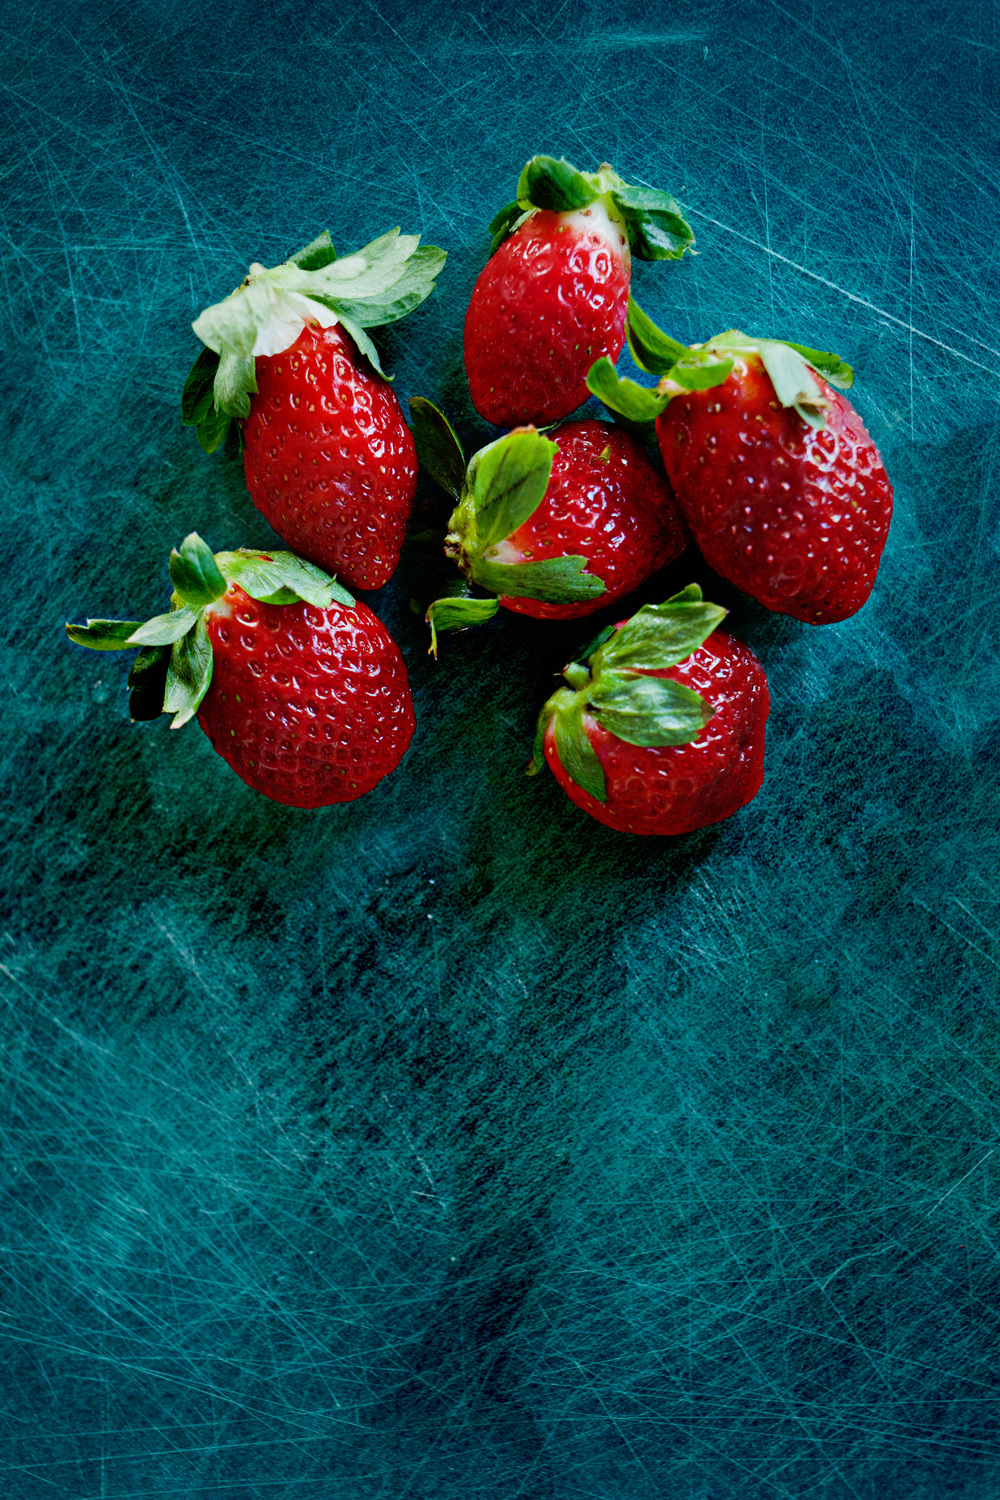 Strawberries02.jpg